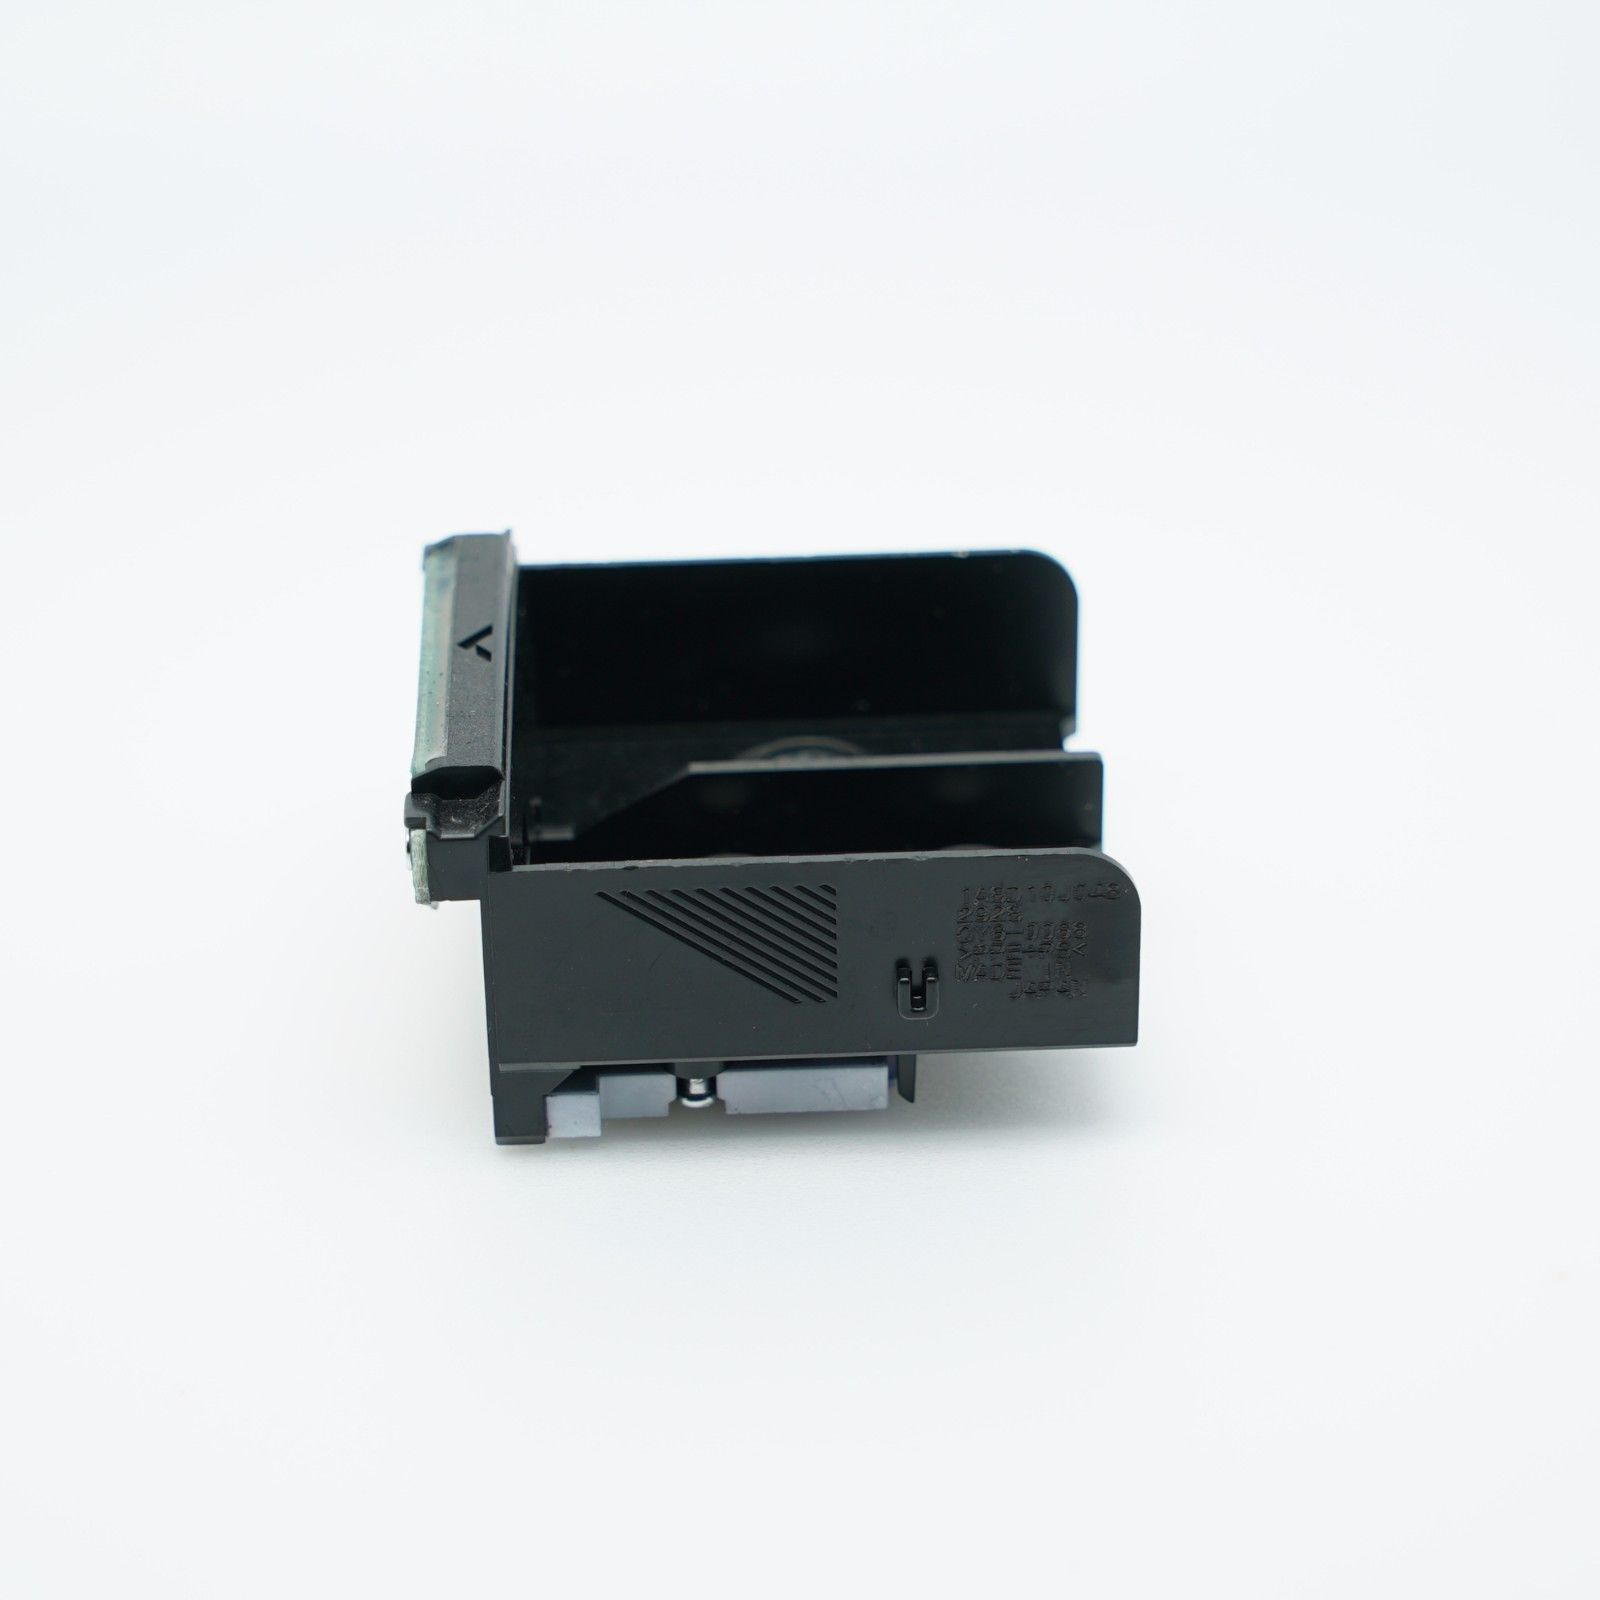 QY6 0068 QY6 0068 000 Printhead Print Head FOR CANON PIXMA iP100 iP110